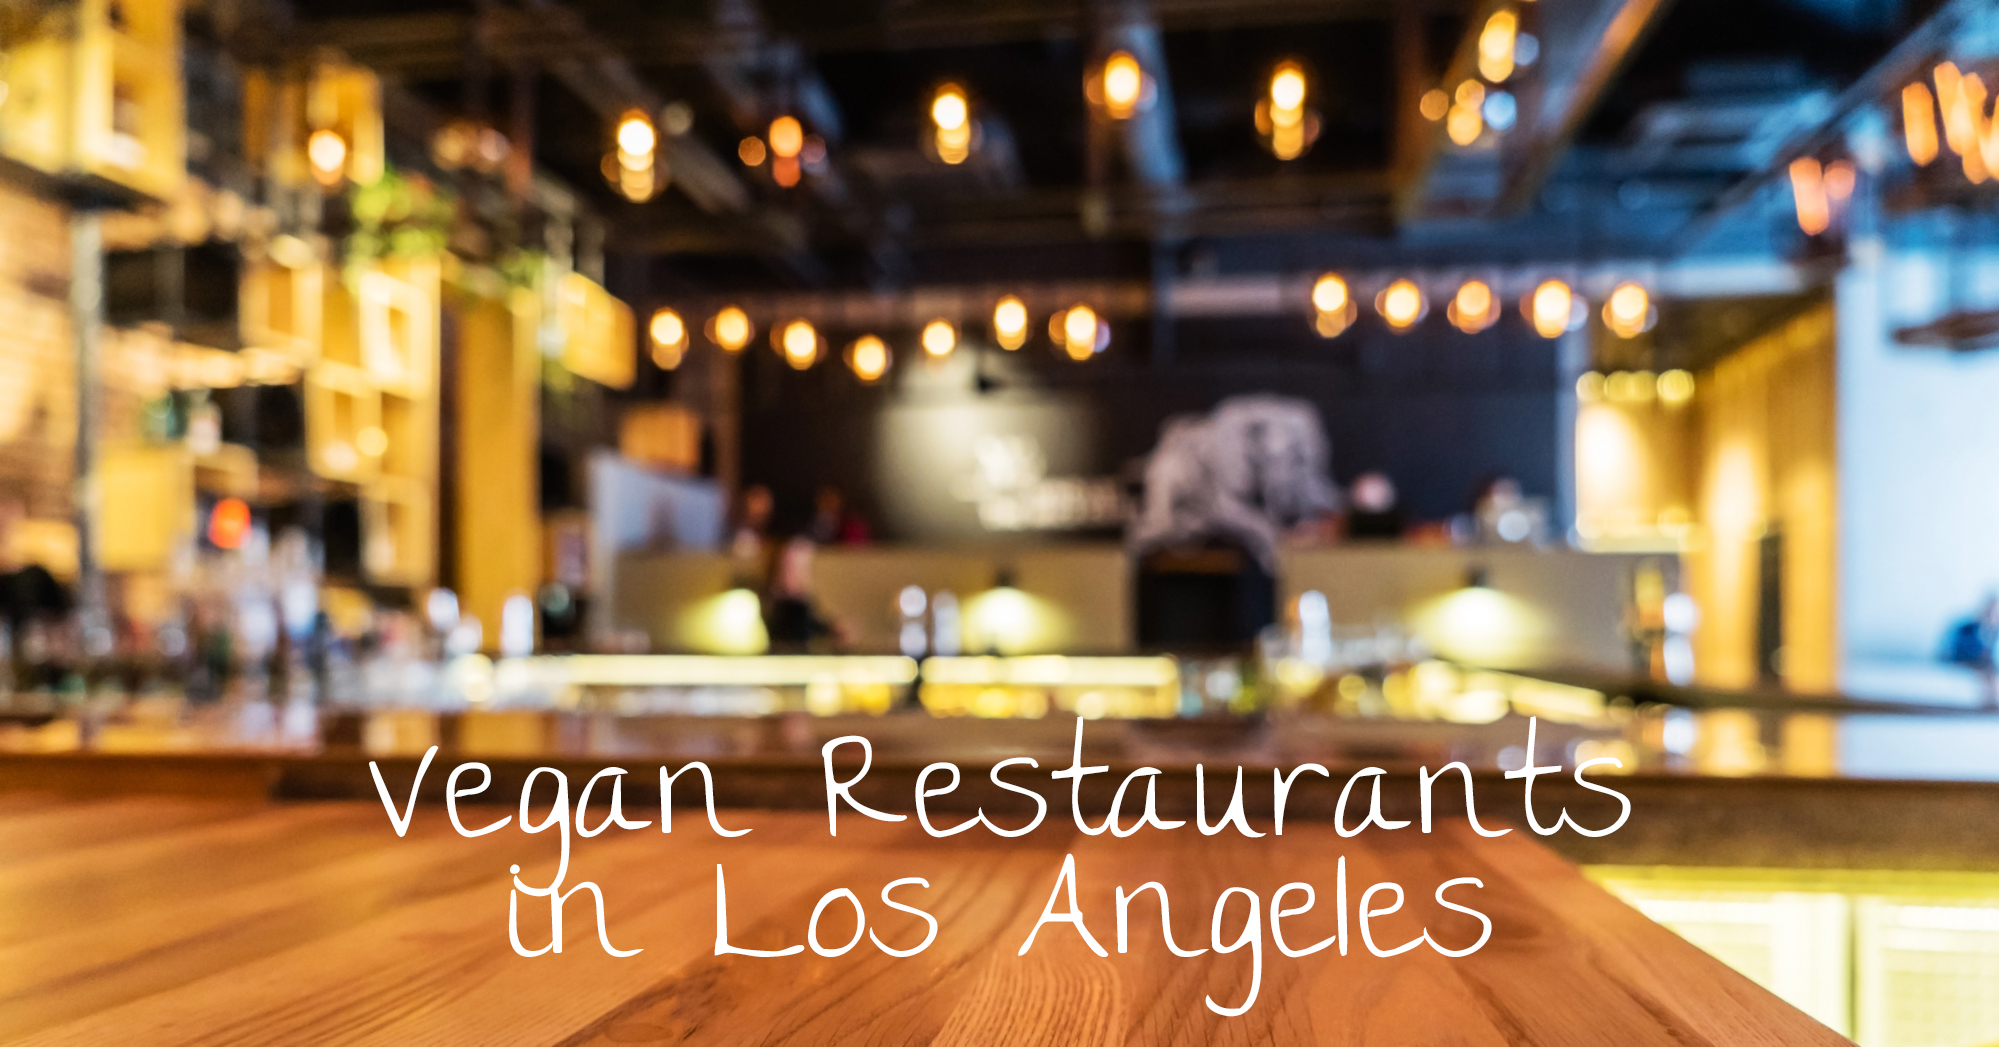 15 Vegan Restaurants in LA